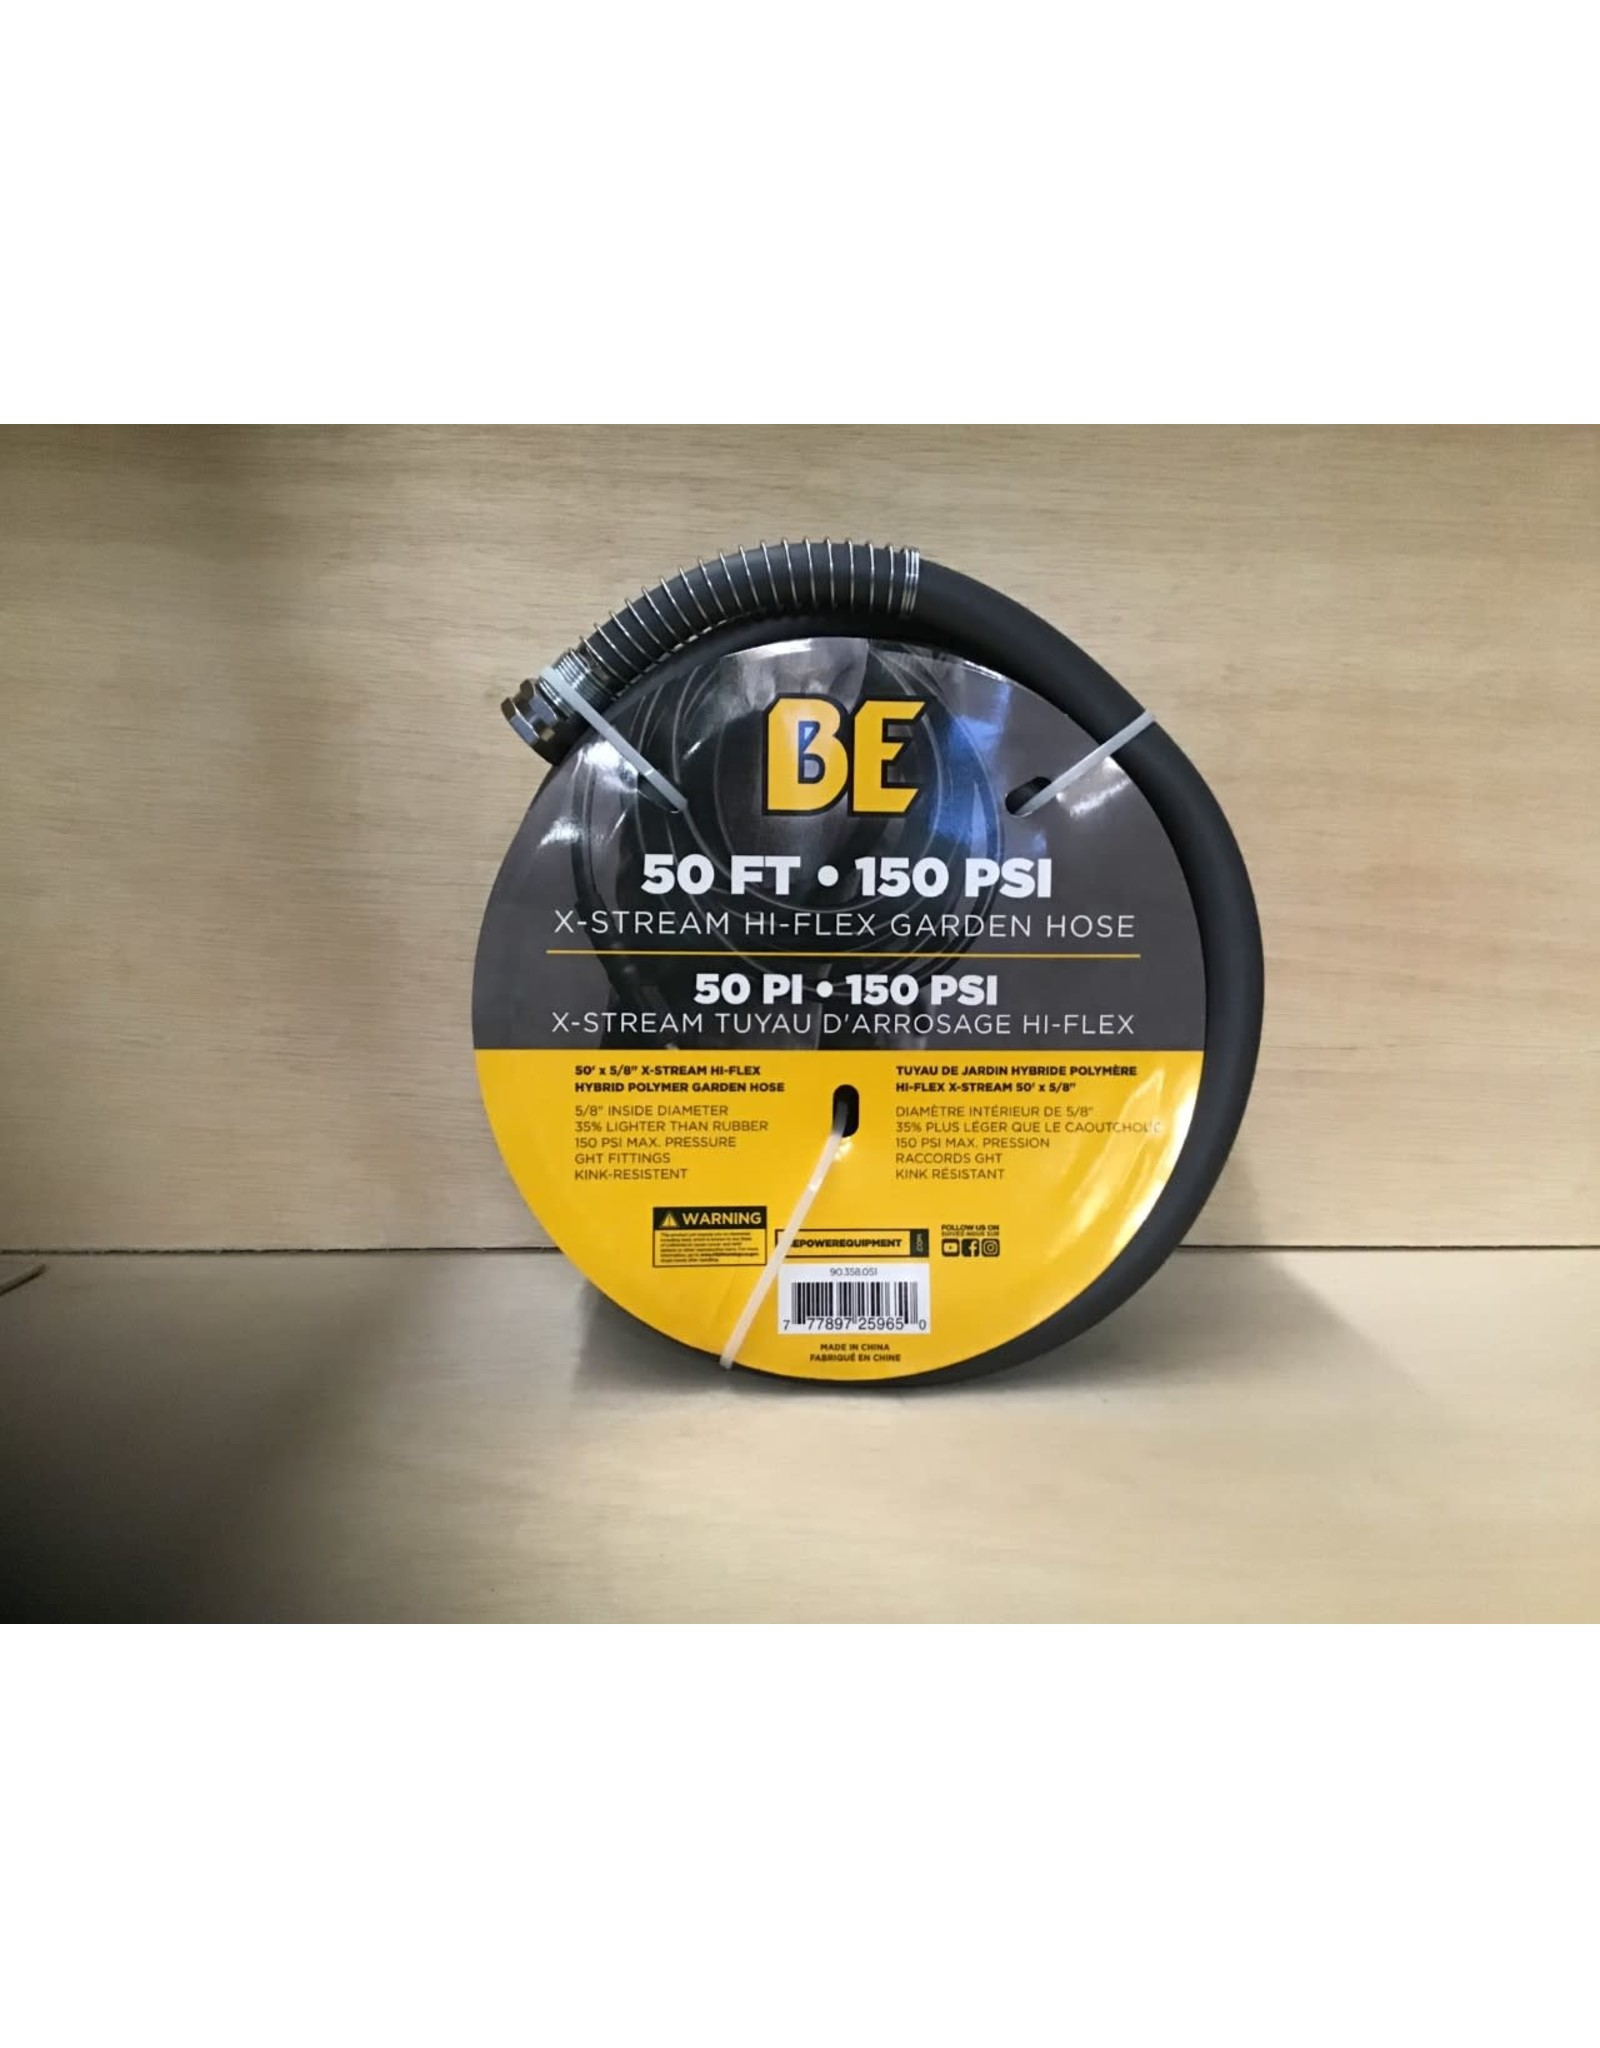 BE 90.358.051 50 ft 150 psi water hose